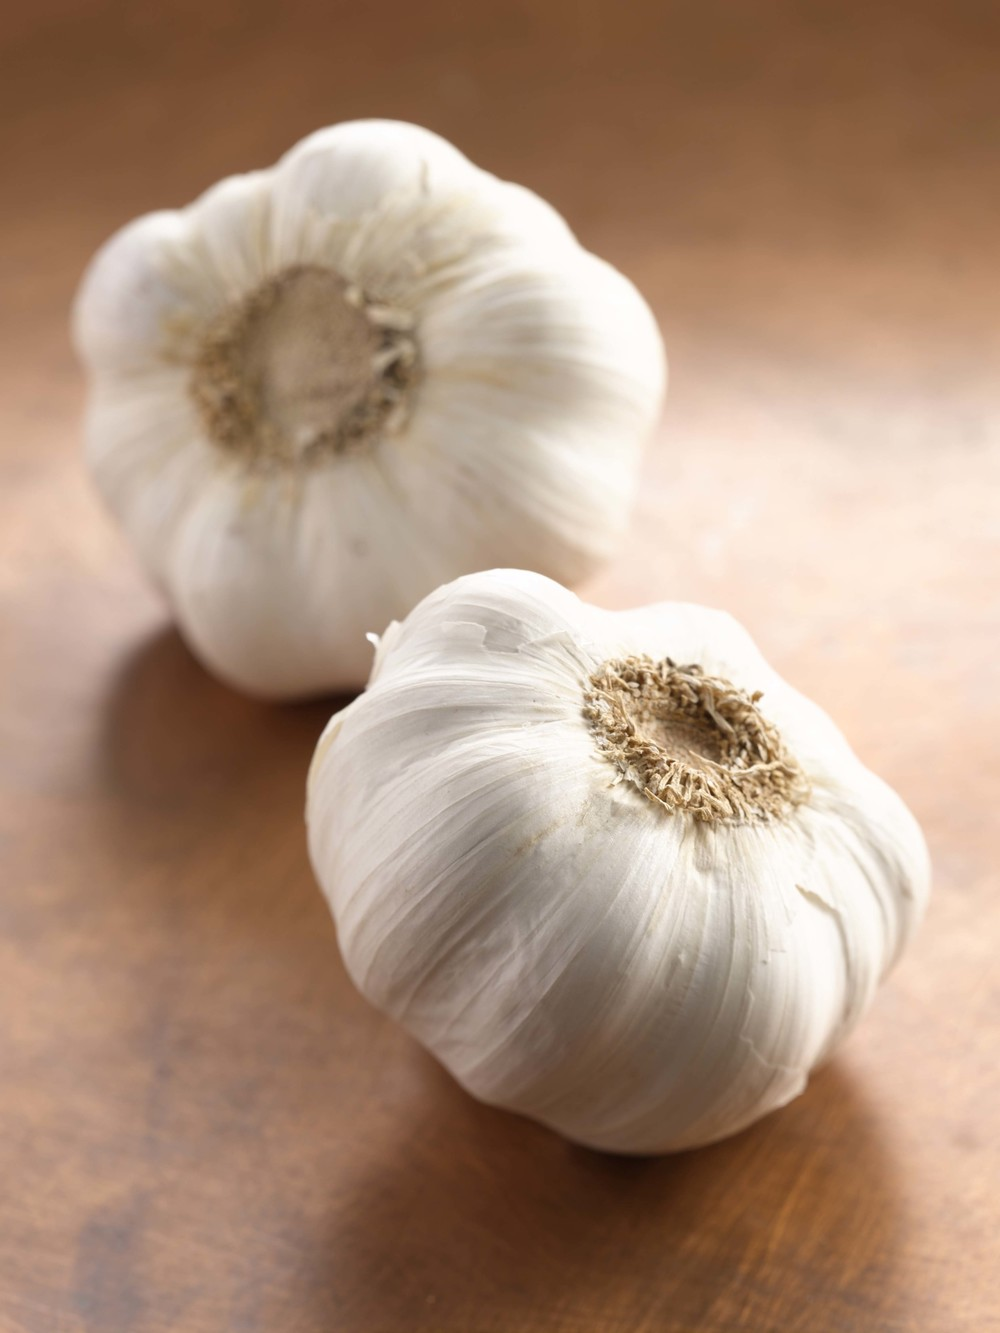 Garlic RT.jpg